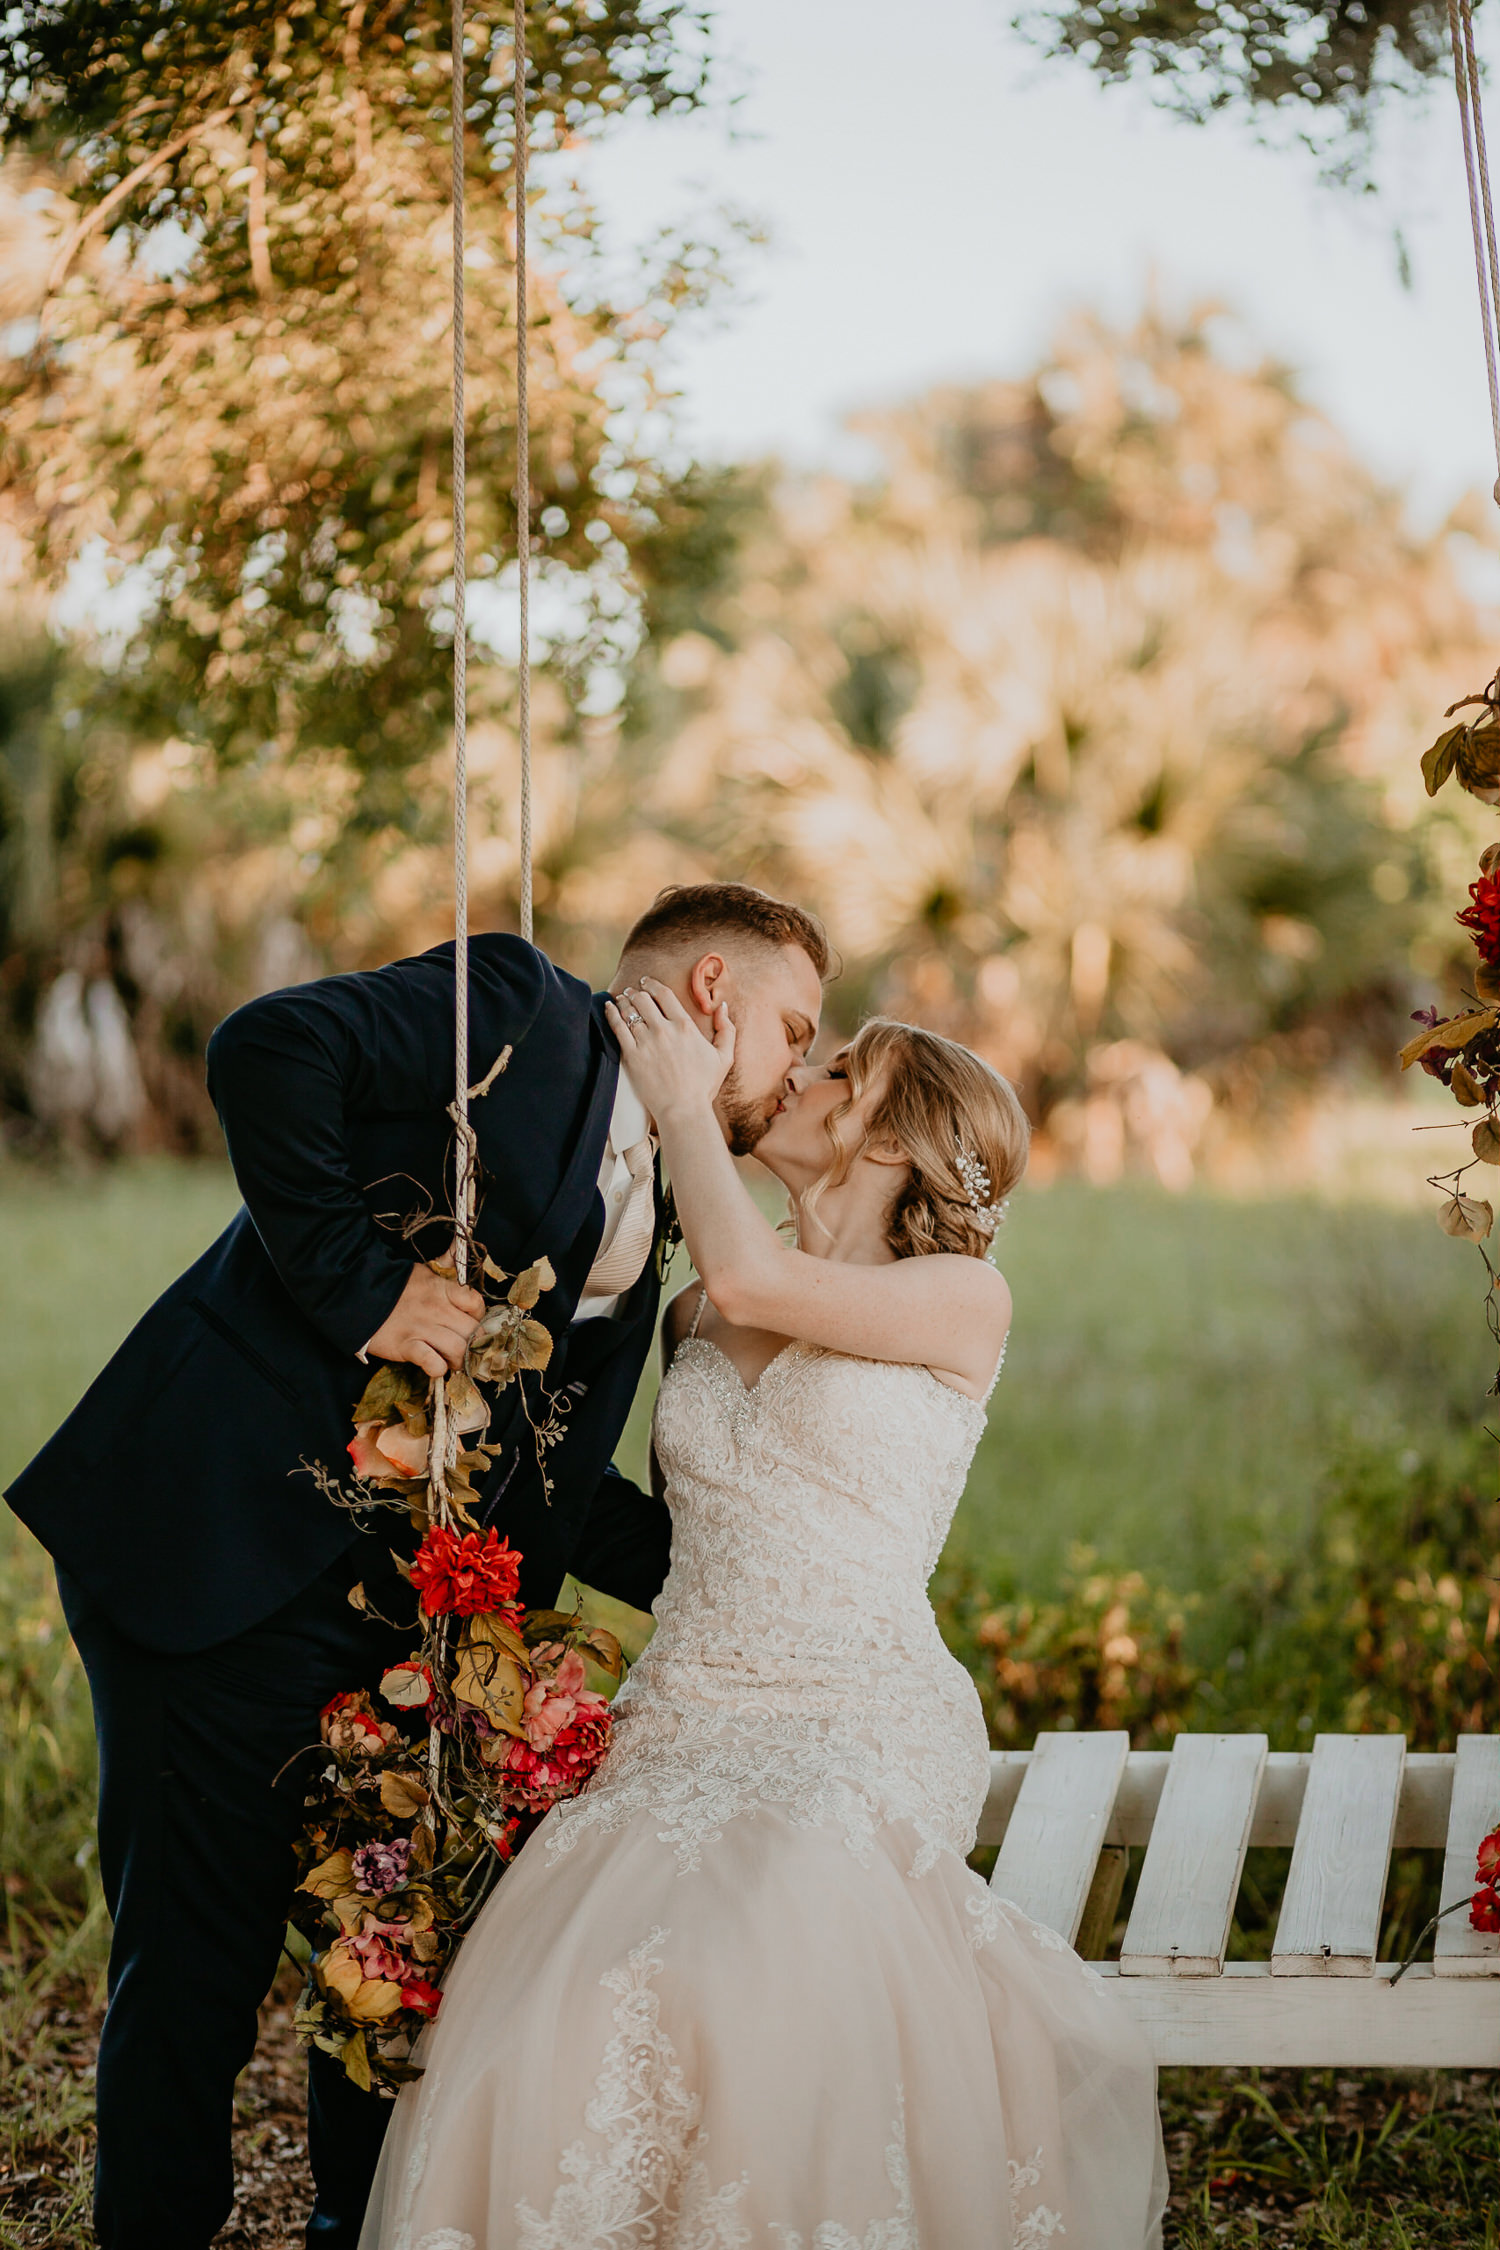 bride sitting on flowery swing bench, groom standing leaning towards her, both kissing